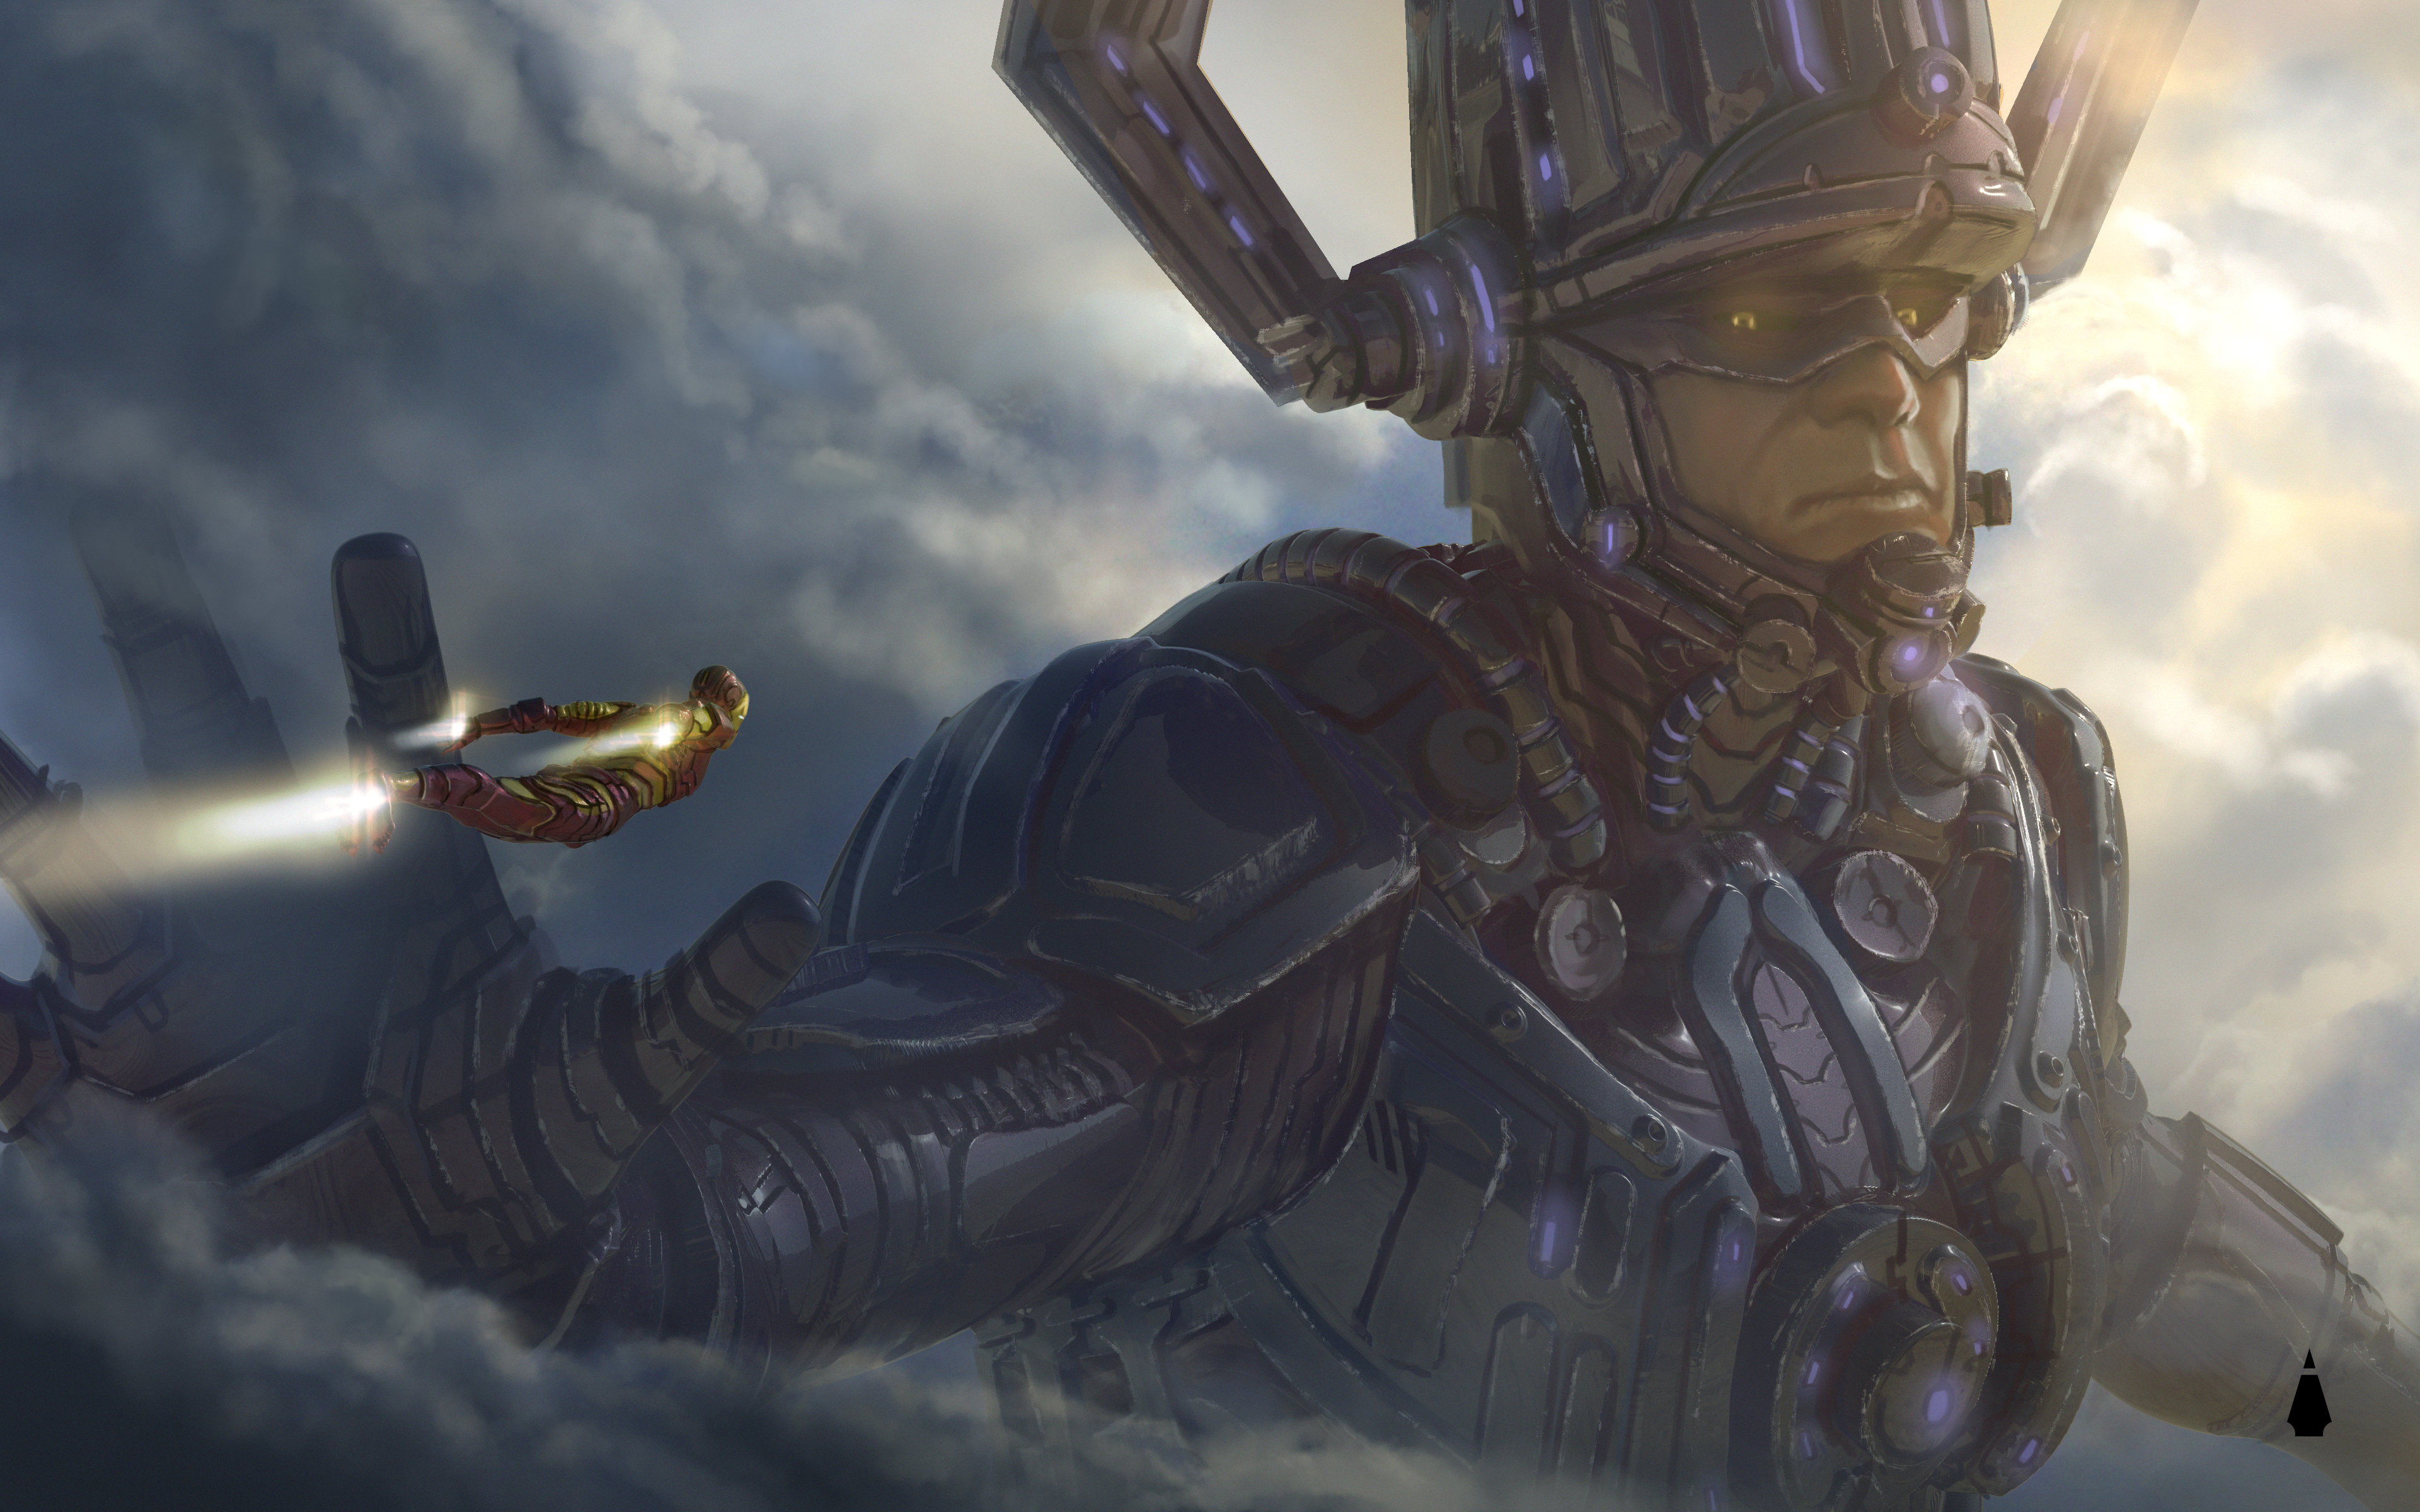 Galactus Vs Iron Man Avengers 4 Concept Art, HD Movies, 4k Wallpapers, Images, Backgrounds